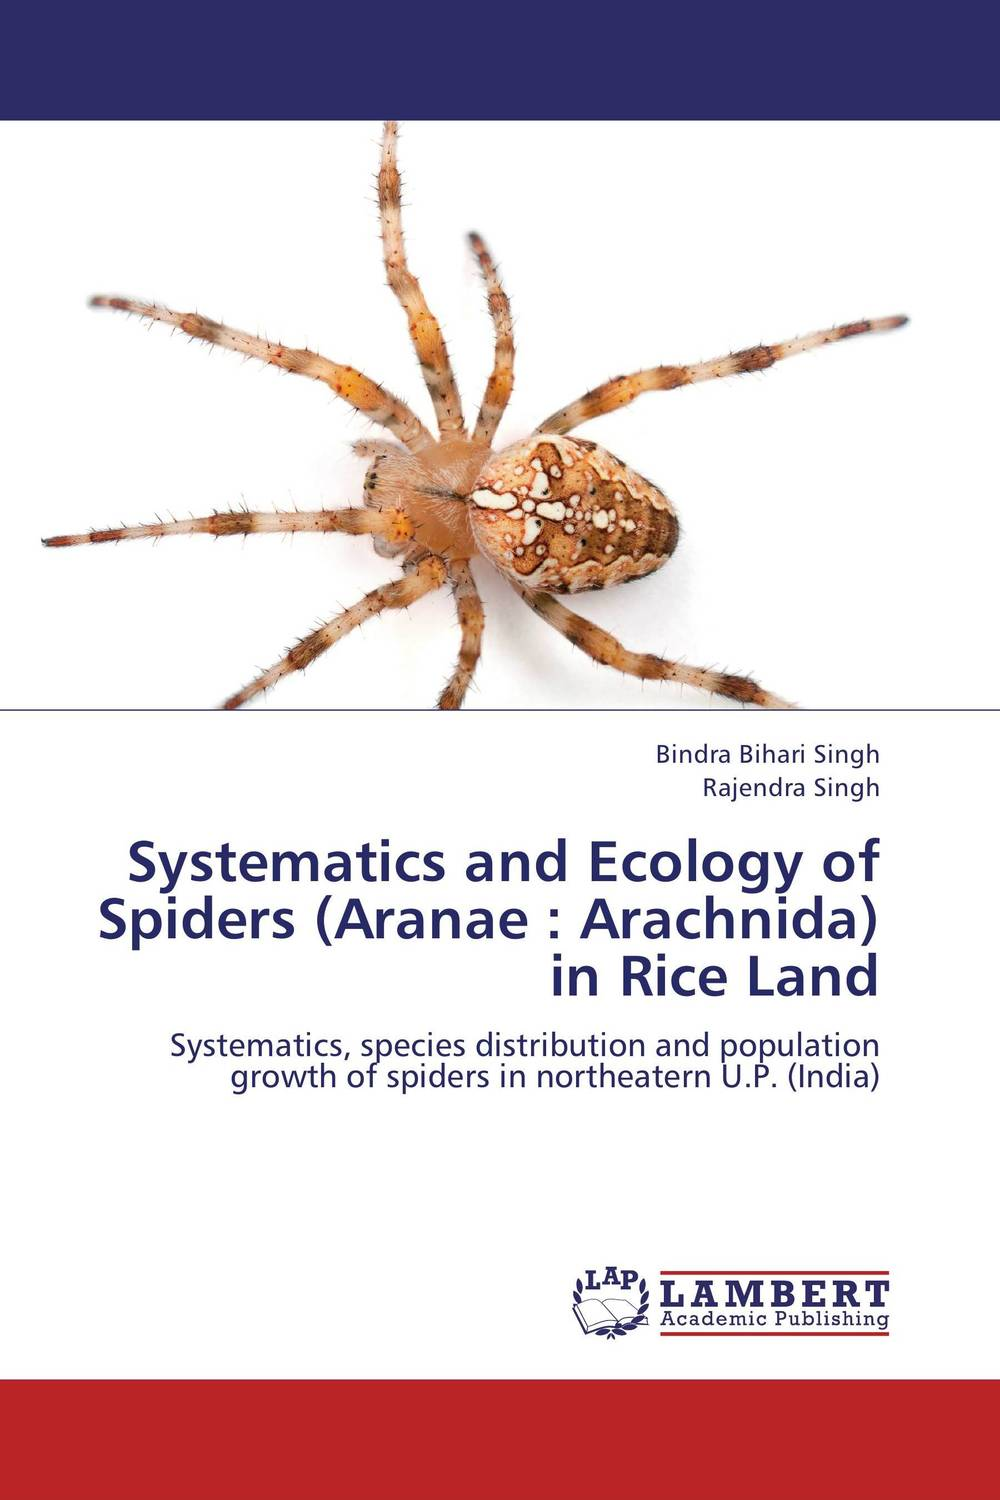 Systematics and Ecology of Spiders (Aranae : Arachnida) in Rice Land ruuhee sexy halter one piece swimsuit swimwear bodysuit women push up bathing suit monokini maillot de bain femme bikini set